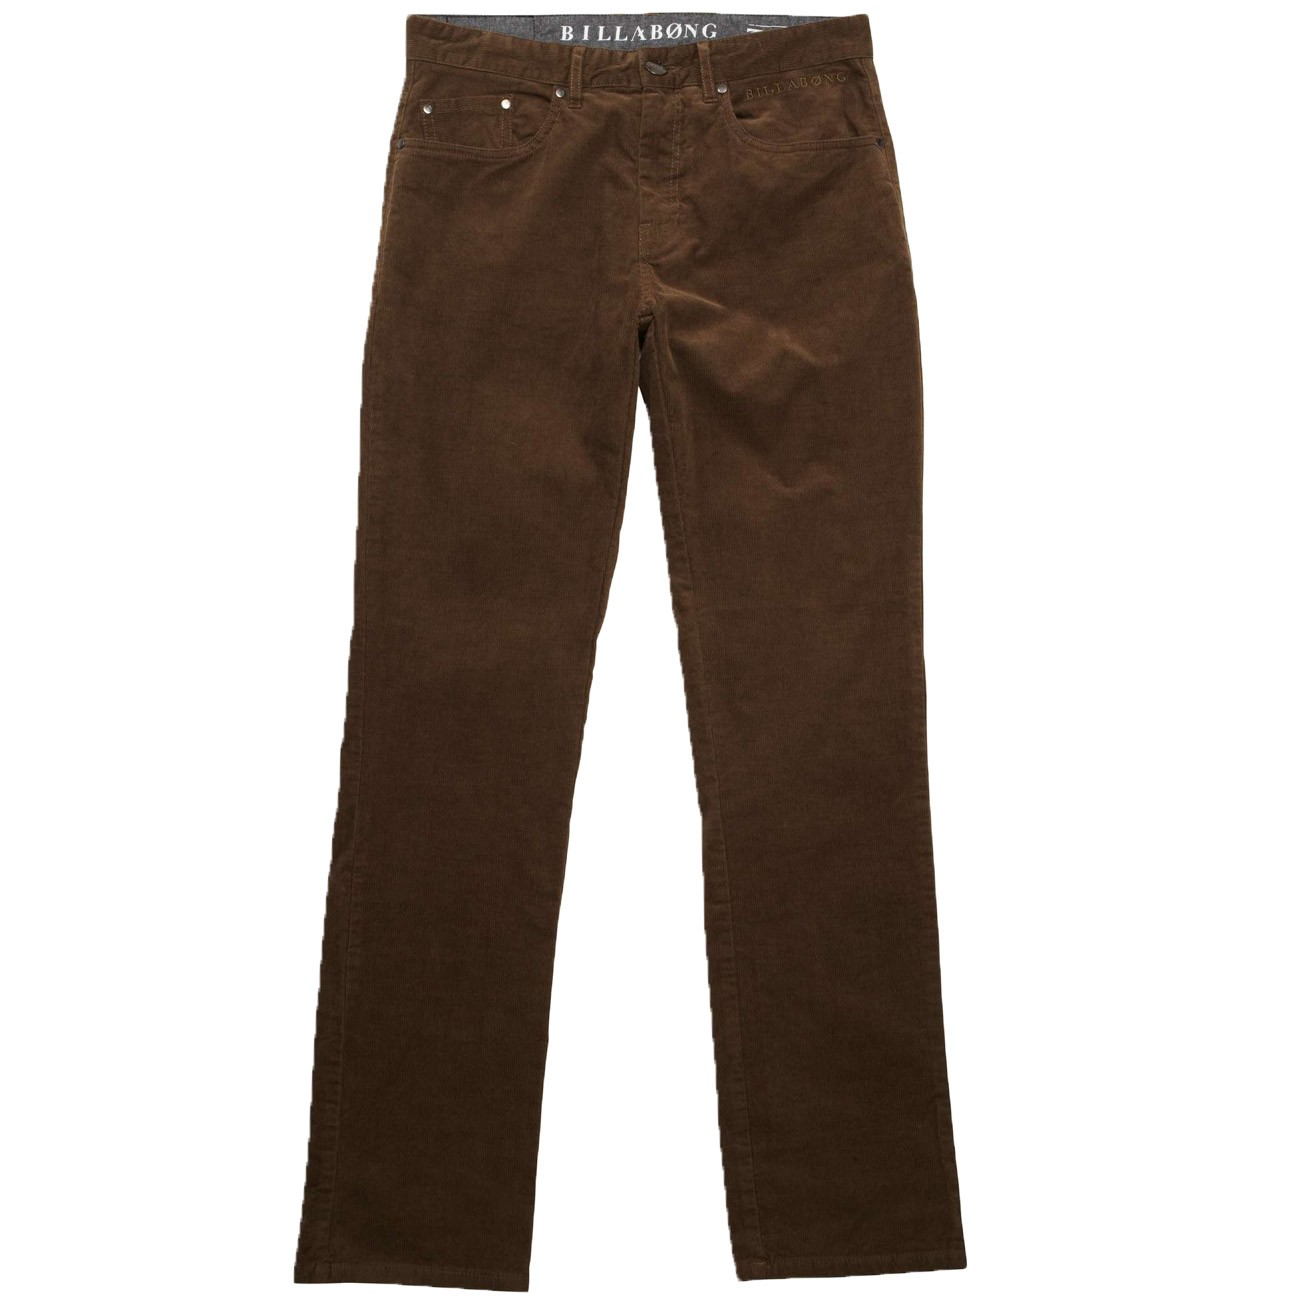 Billabong Fifty Cord Pants - Camel